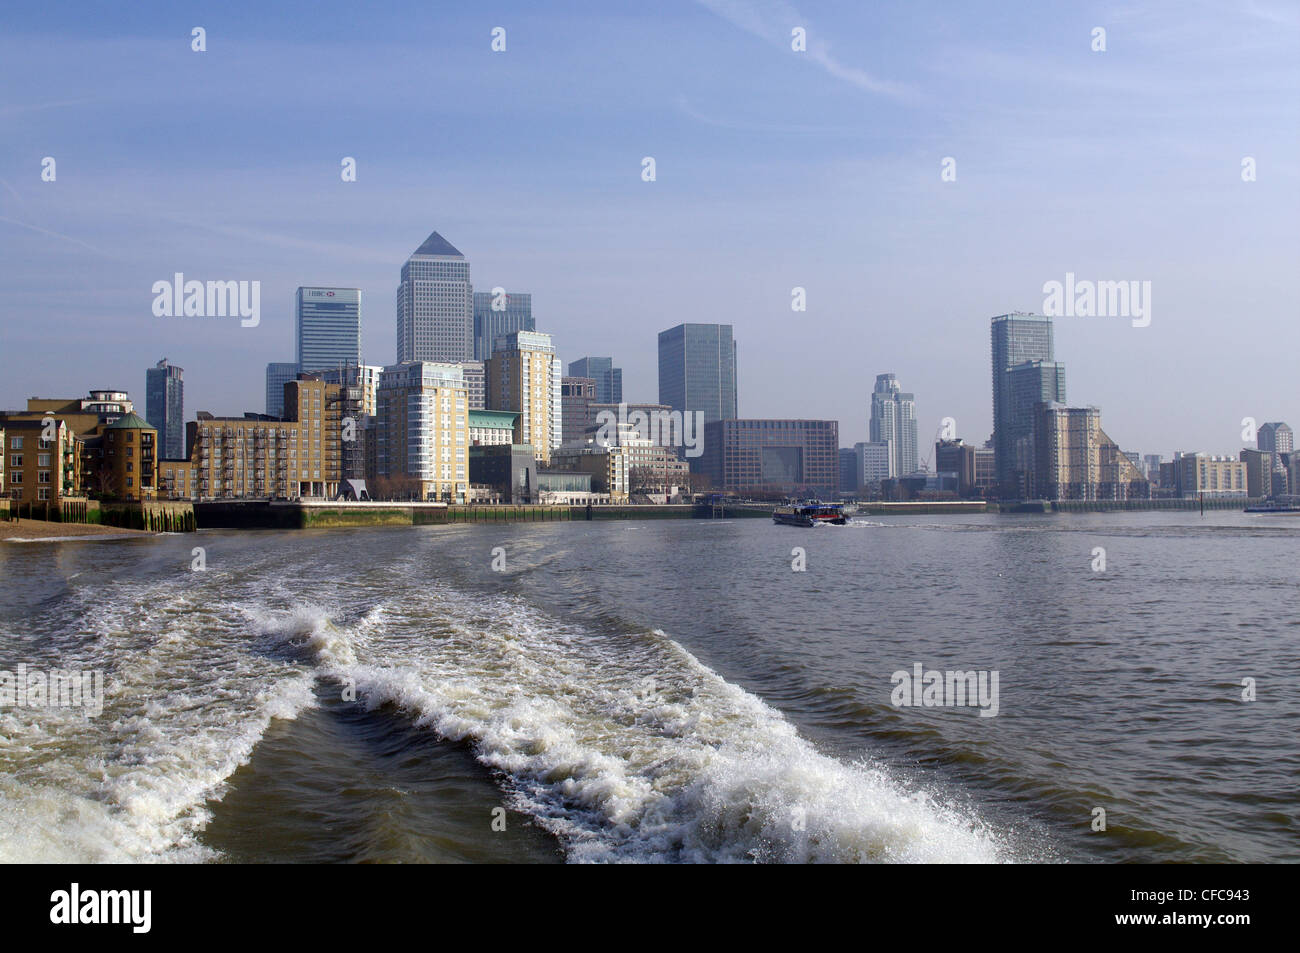 The view of Canary Wharf from river Thames - London, UK - Stock Image